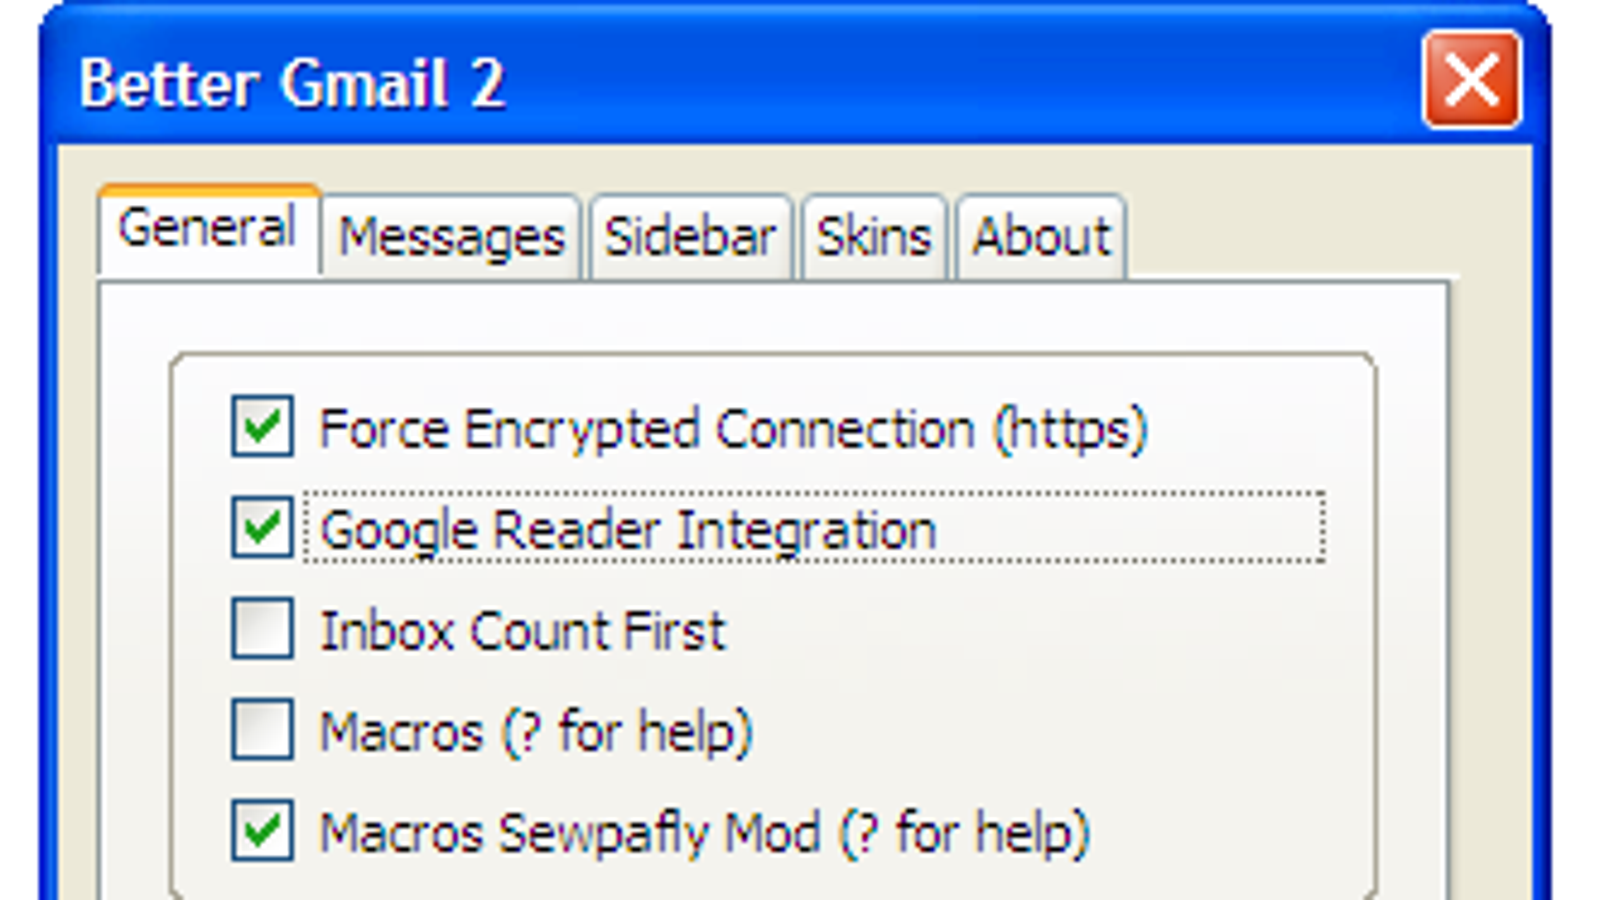 Better Gmail 2 Gets Four New Features Plus Skins